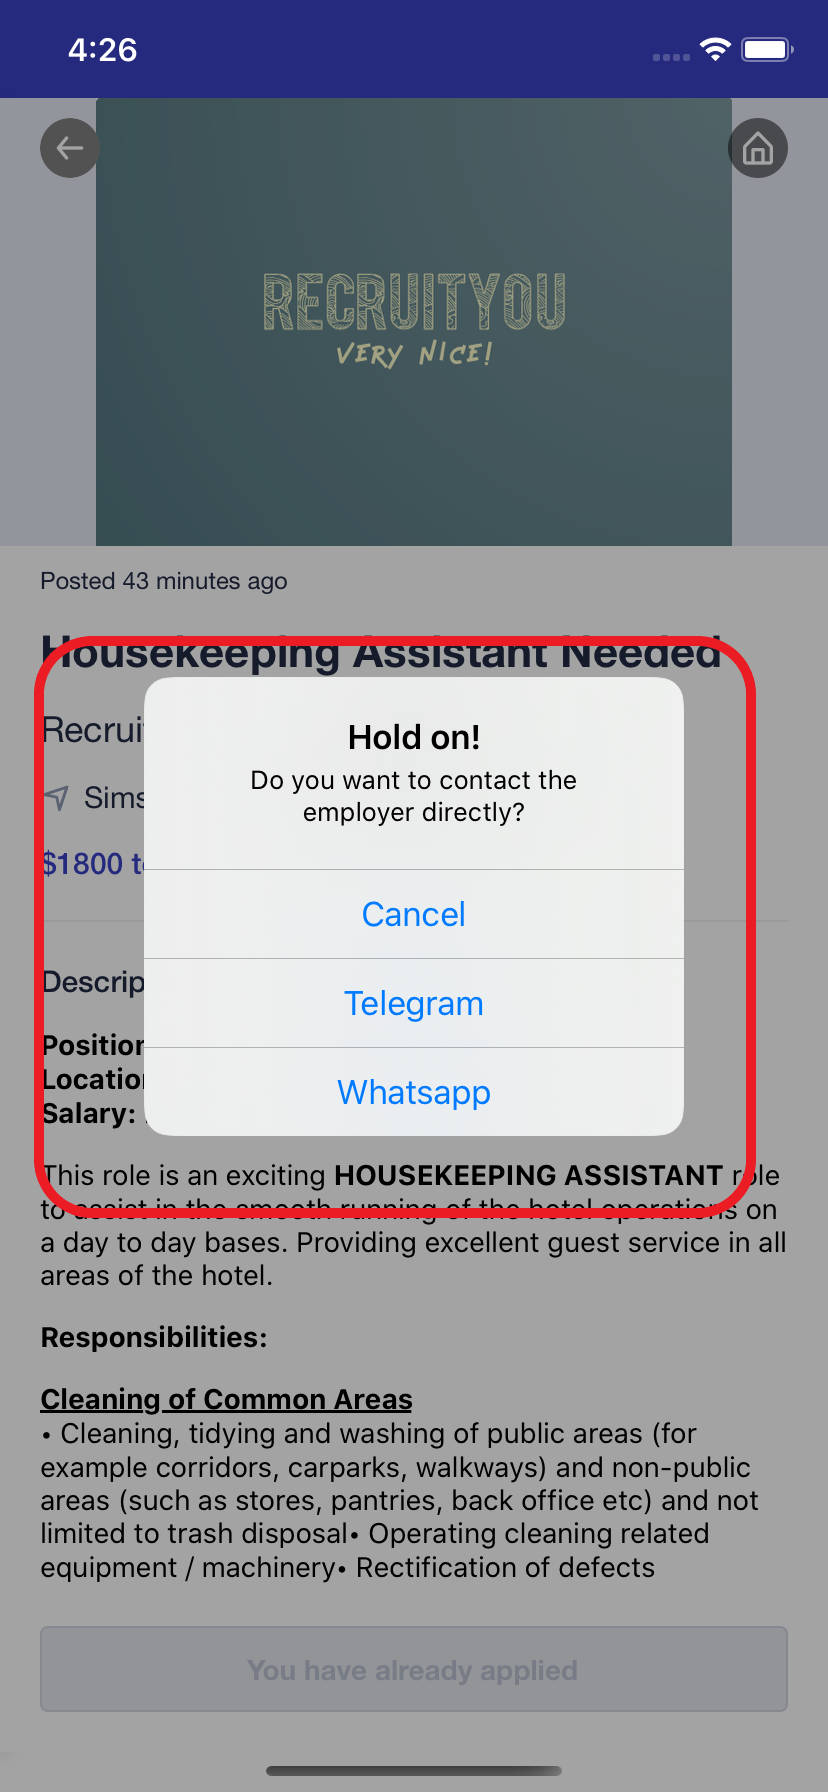 Search for full time warehouse jobs on workclass app and contact employers like DHL, Lazada and Giant!